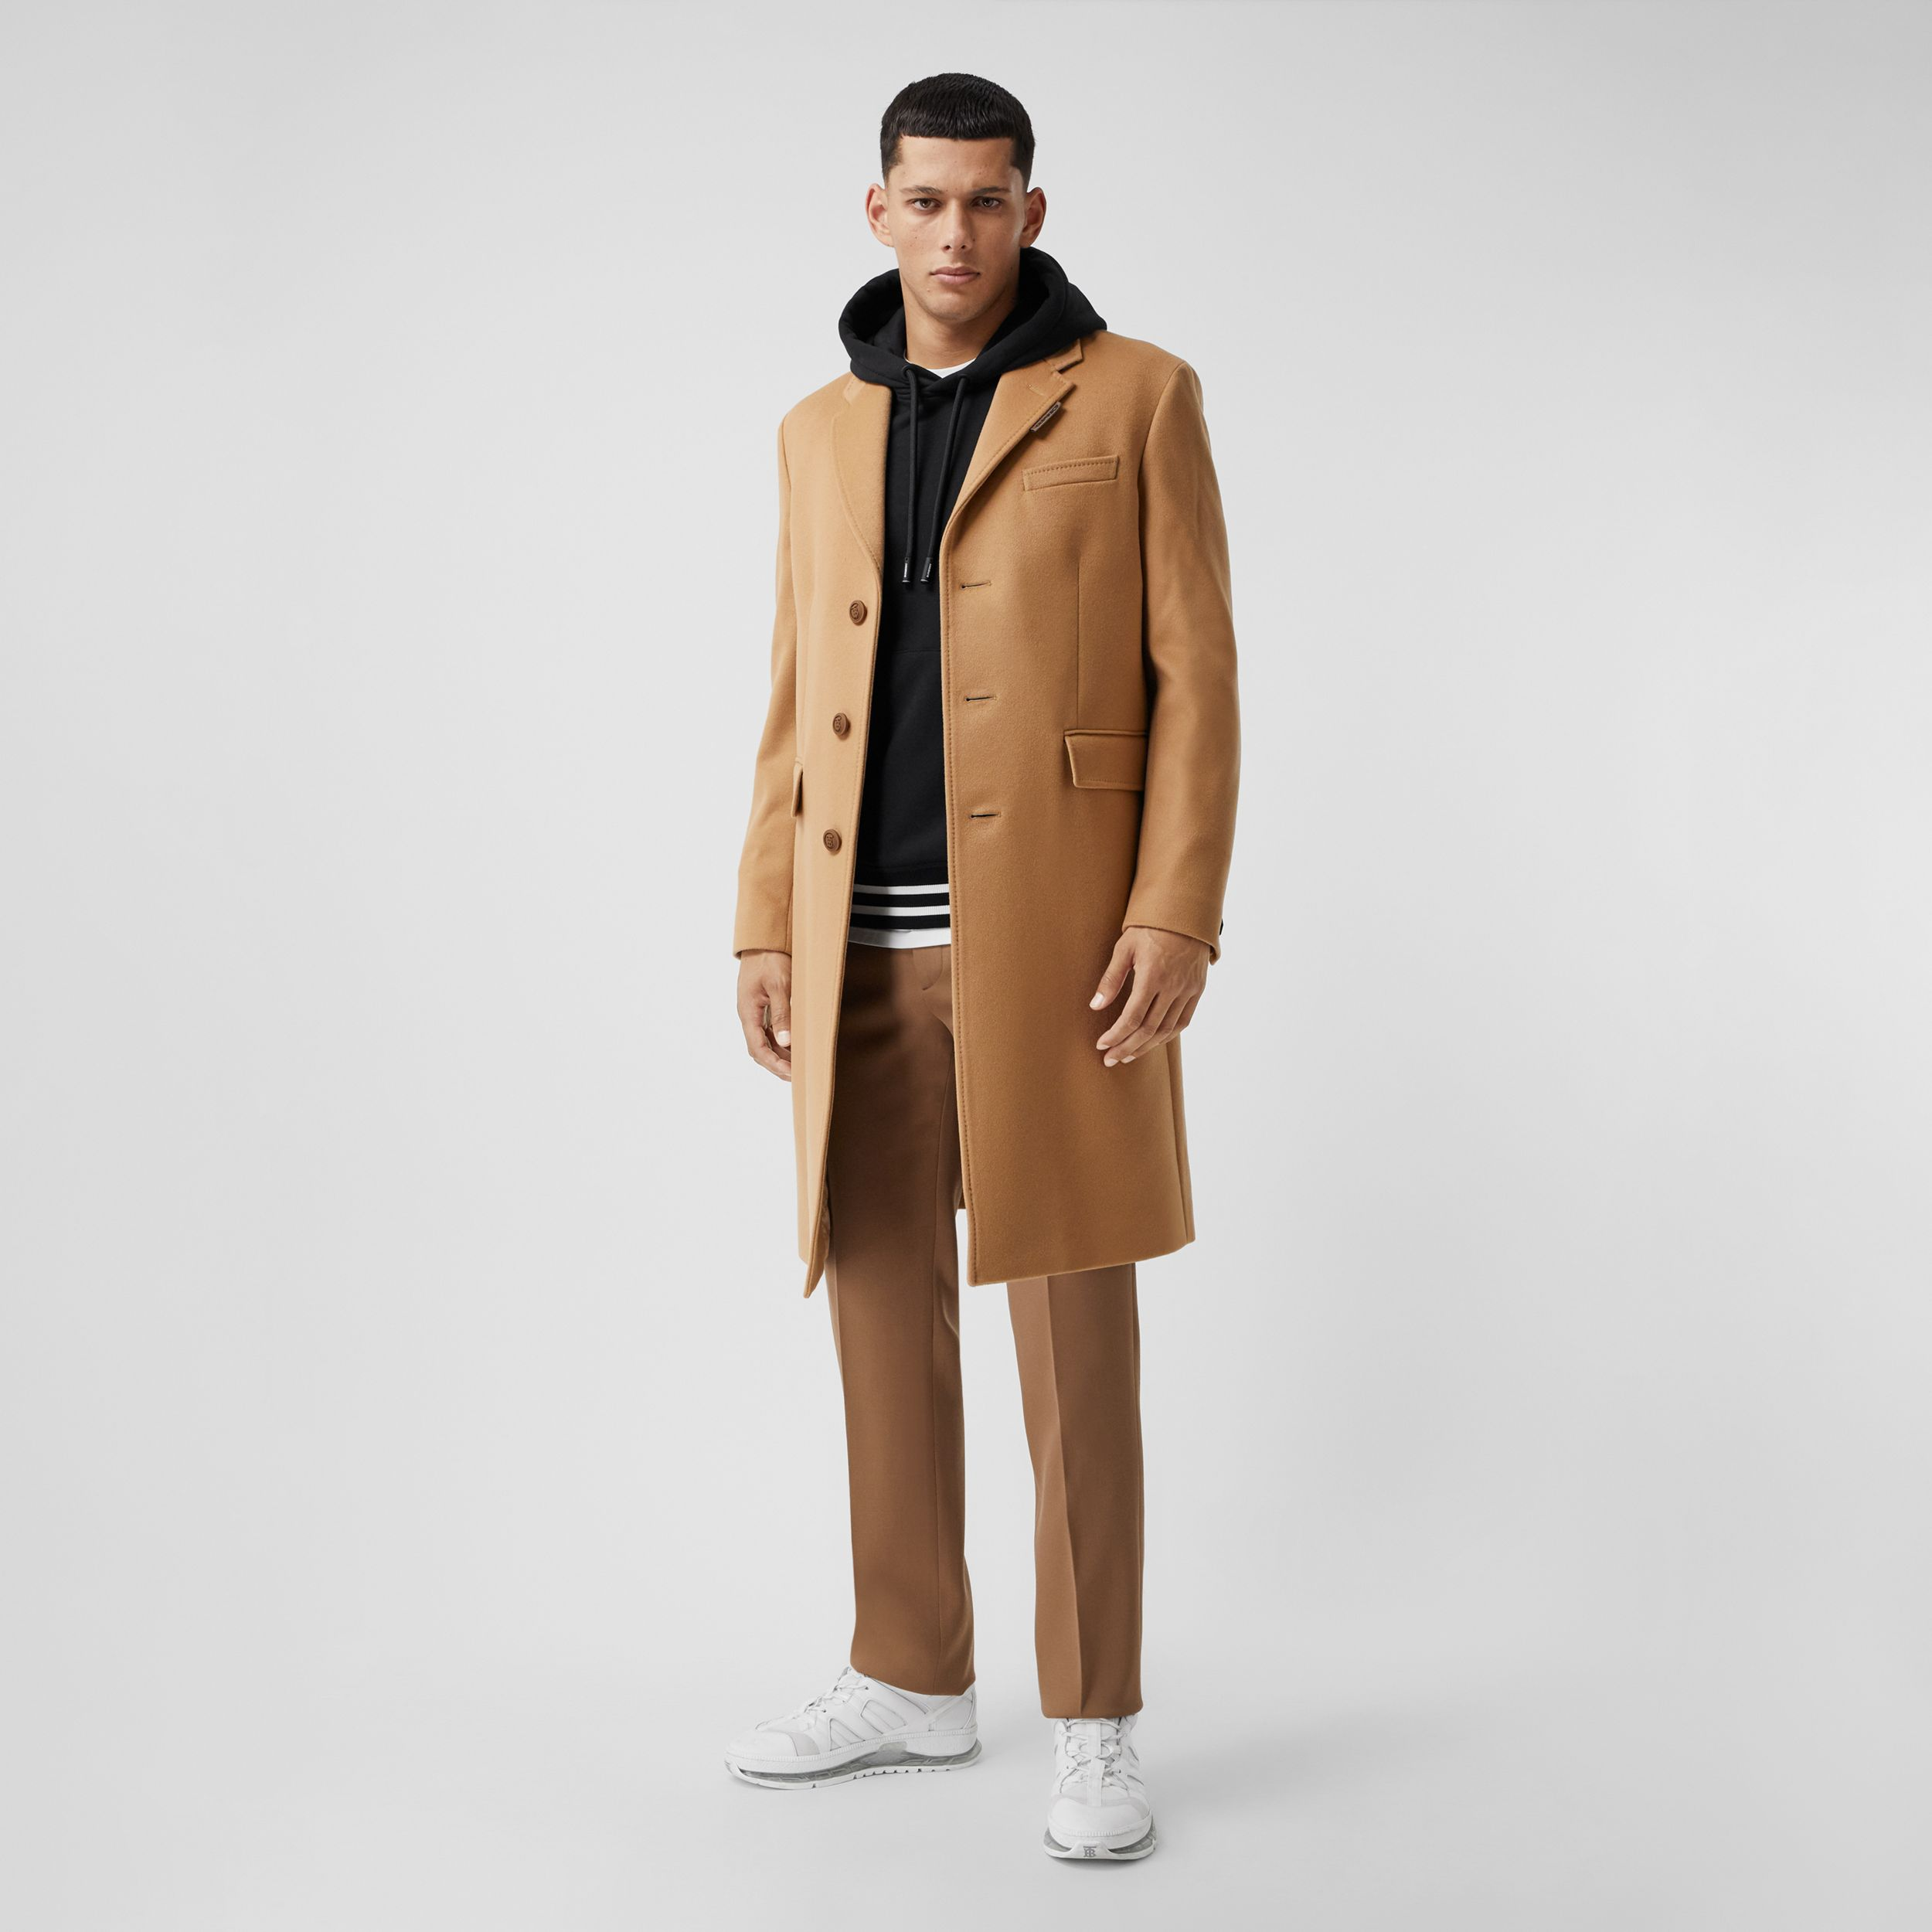 Button Detail Wool Cashmere Tailored Coat in Camel - Men | Burberry - 1